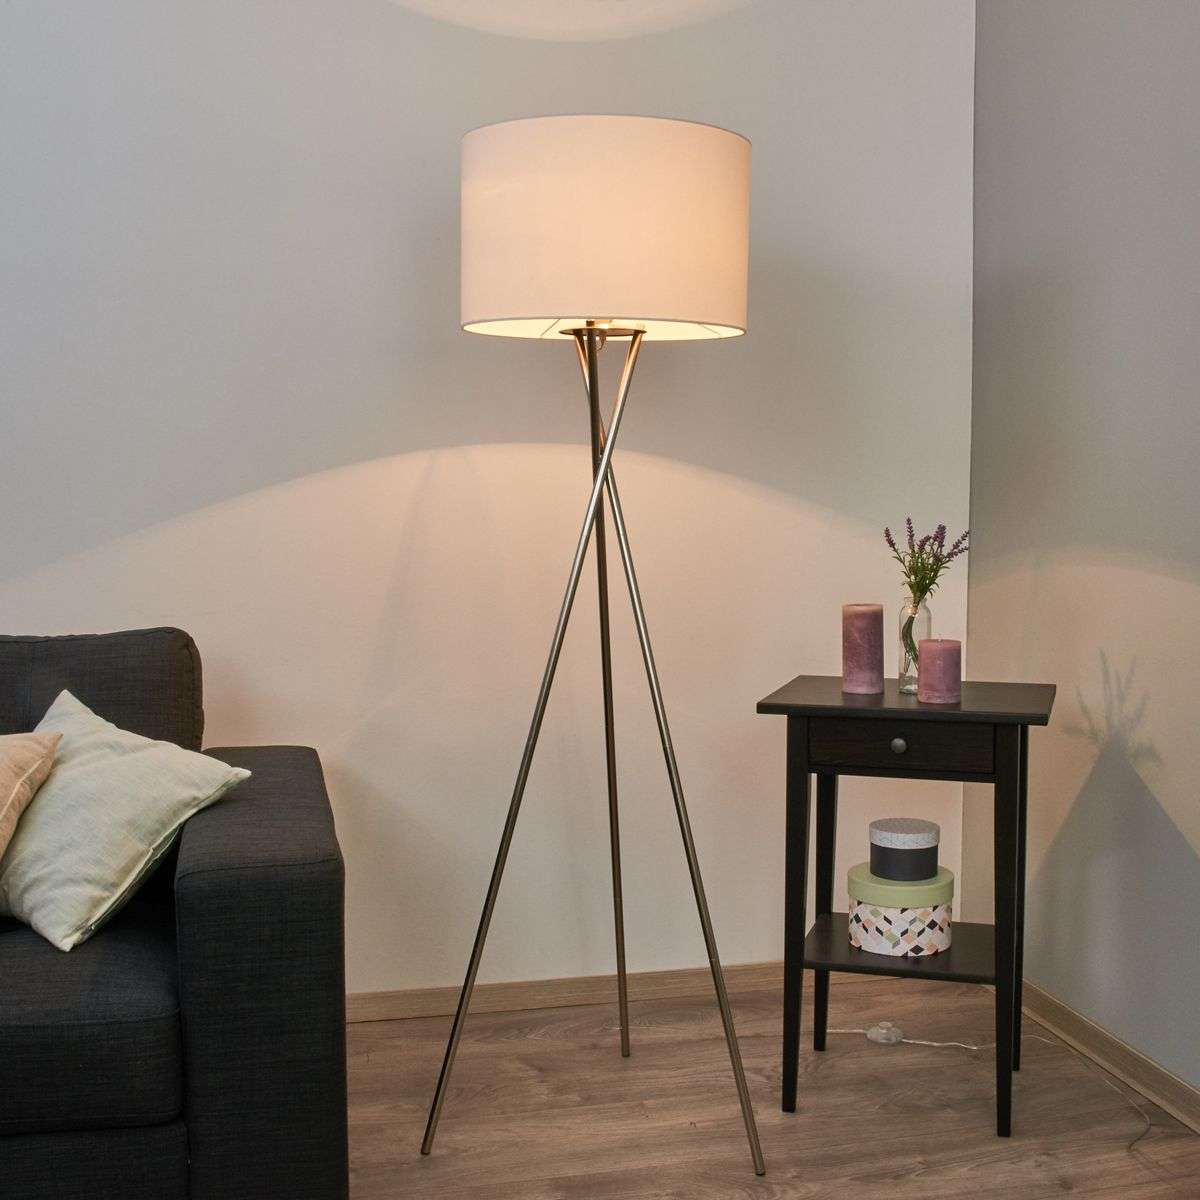 Tripod floor lamp fiby white fabric lampshade lightscouk for Wilko tripod floor lamp white